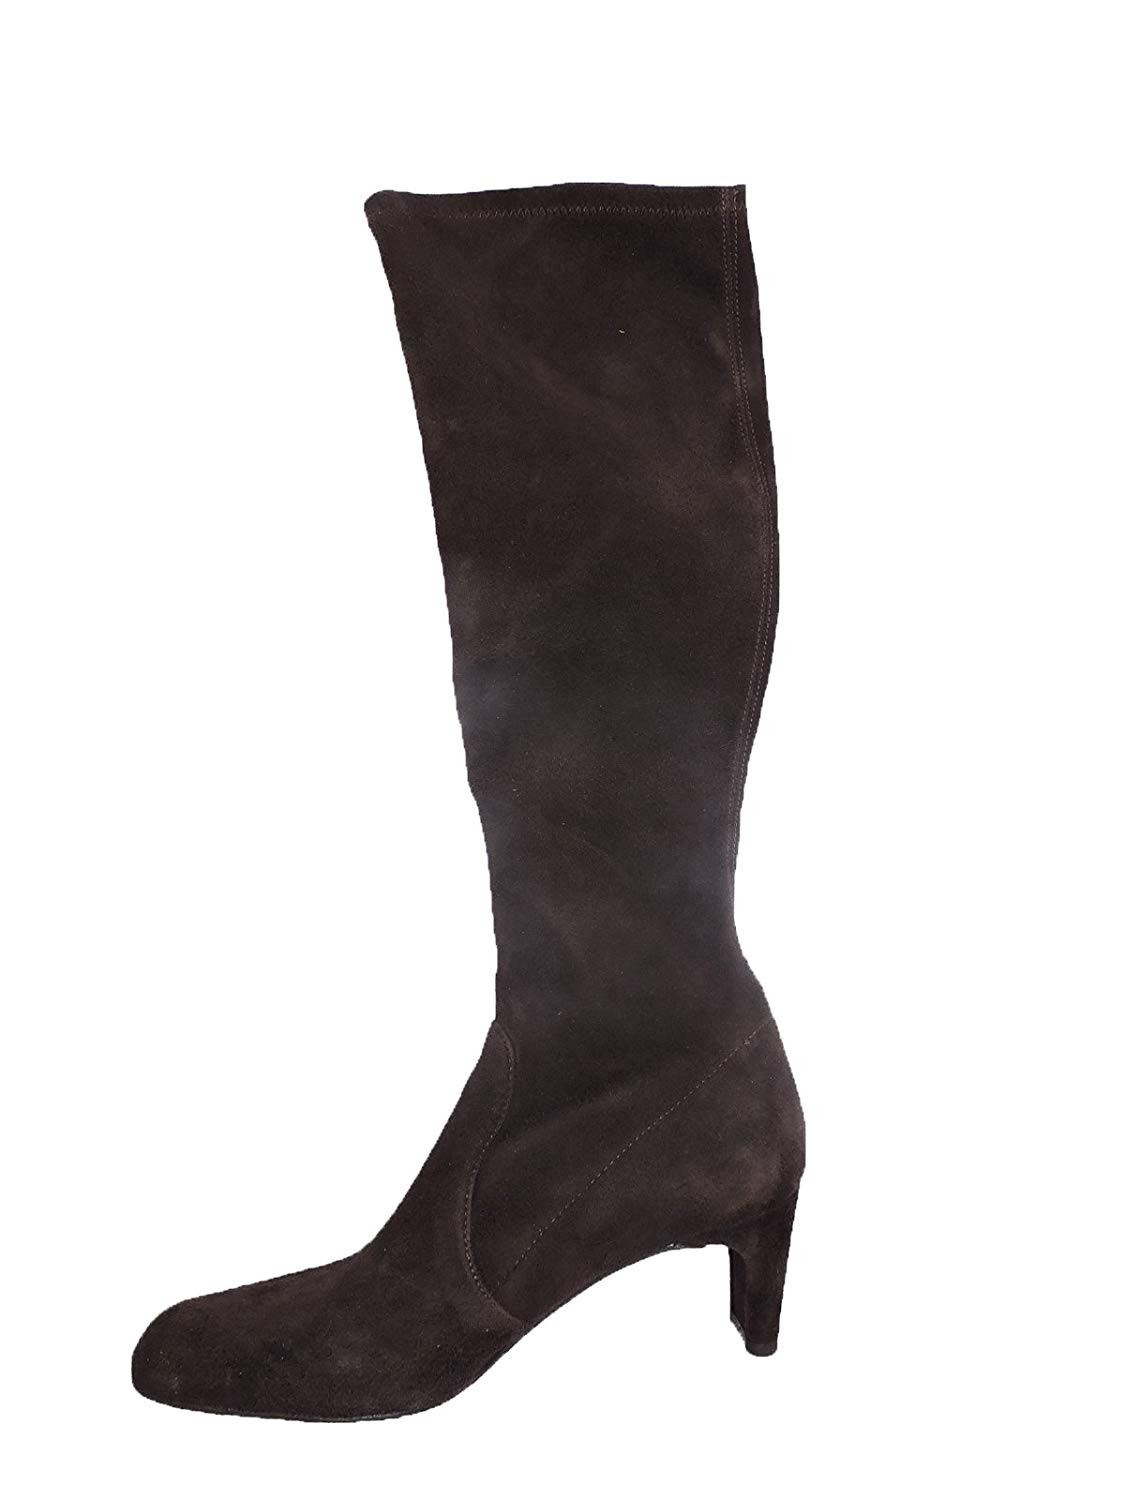 90e24e511f1 Cheap stuart weitzman over the knee suede boots find stuart jpg 1125x1500 Stuart  weitzman 5050 olive